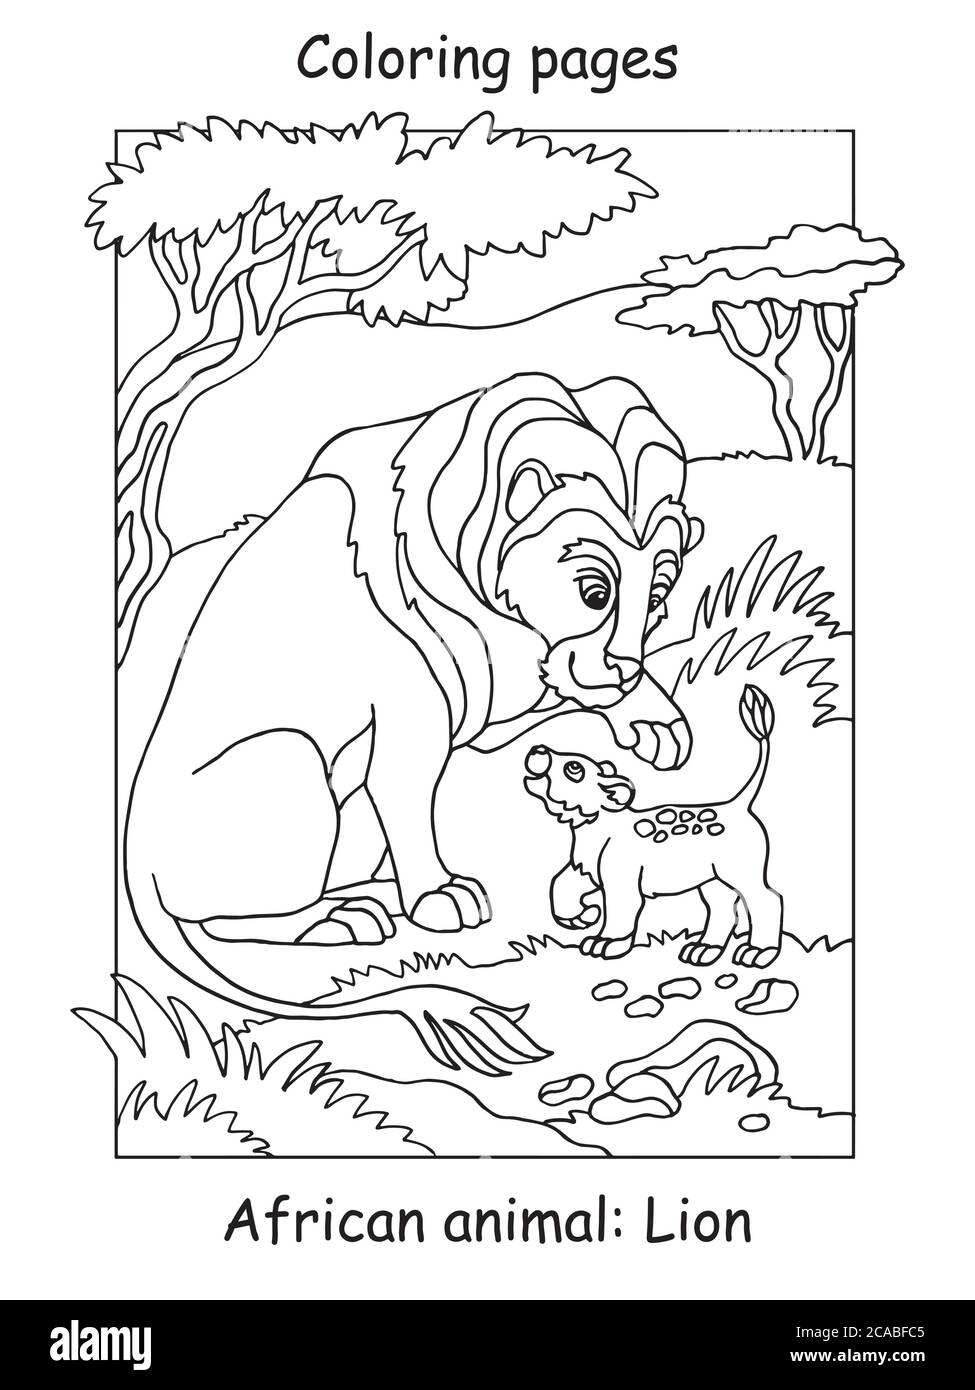 Vector Coloring Pages With Cute Lion Family In African Area Cartoon Contour Illustration Isolated On White Background Stock Illustration For Colorin Stock Vector Image Art Alamy